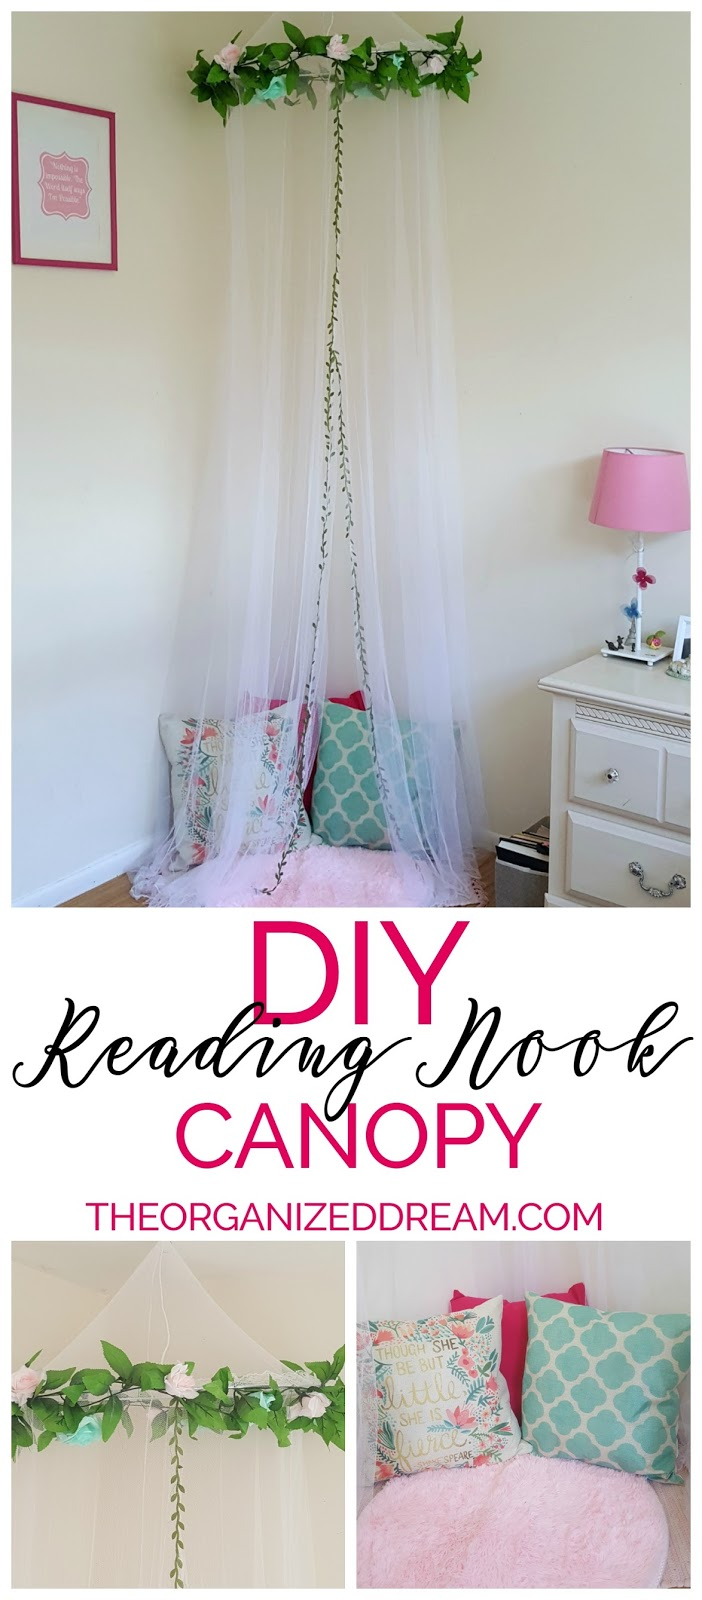 All together this project didnu0027t cost that much and my daughter now has a designated place to curl up and read a book. This little nook has become her new ...  sc 1 st  The Organized Dream & DIY Reading Nook Canopy - The Organized Dream